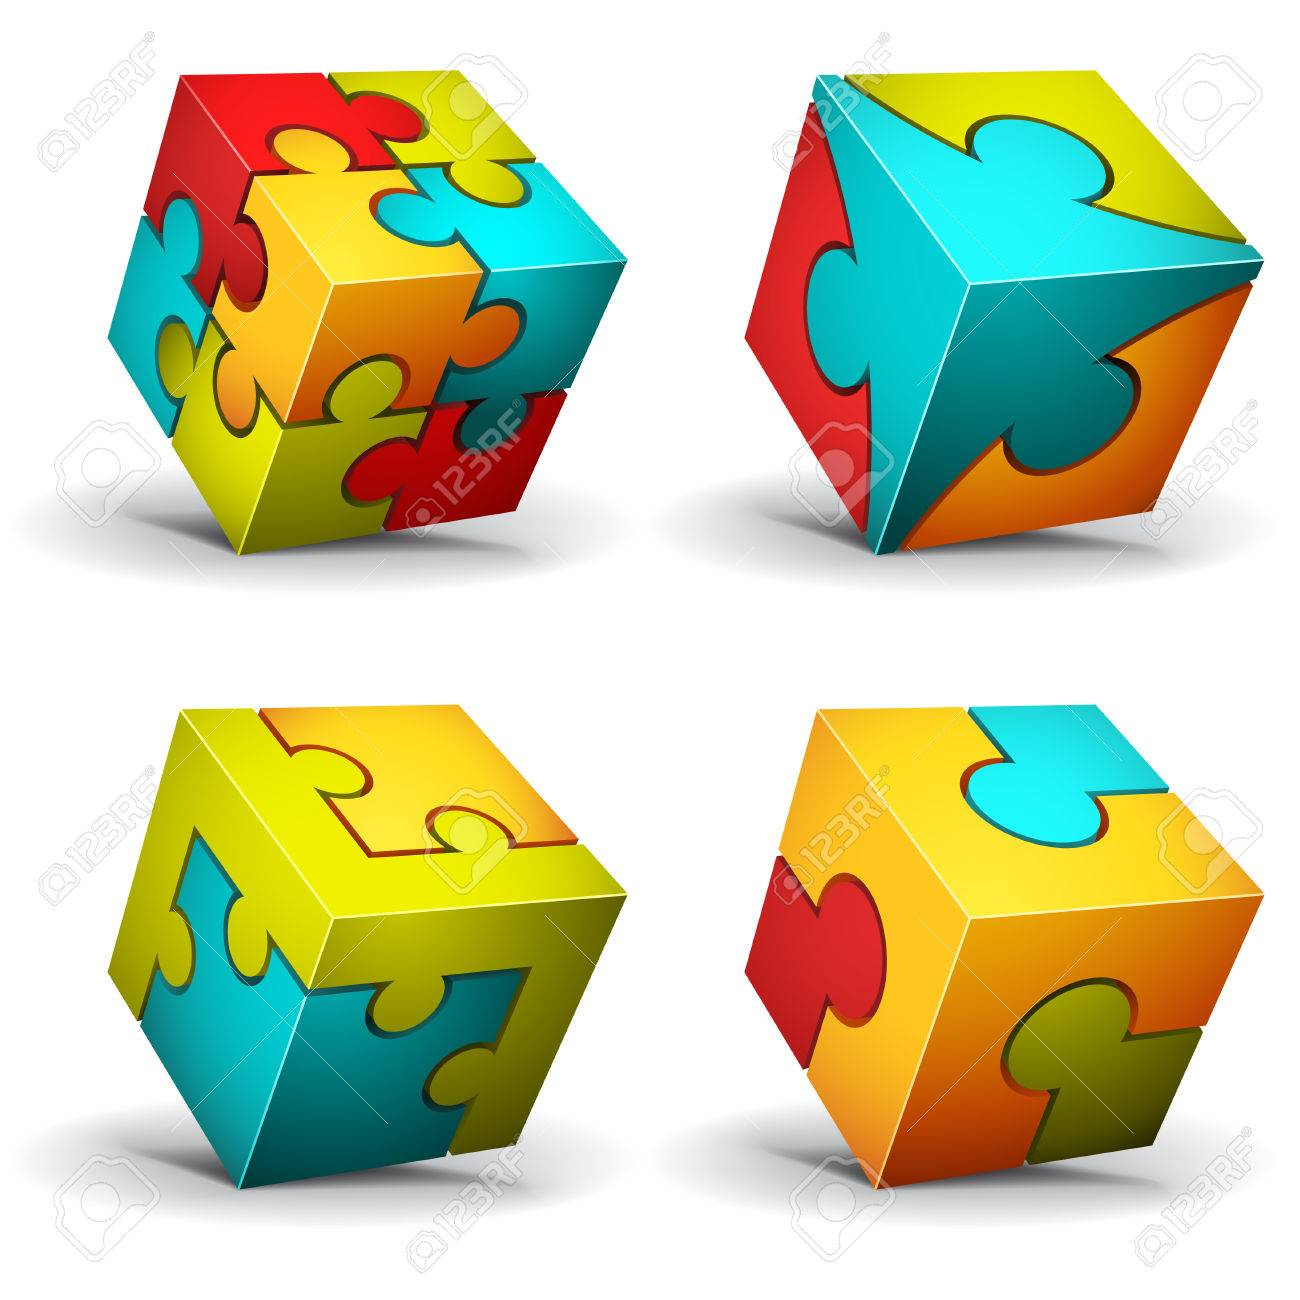 illustration of cubes made of puzzle - 25398405